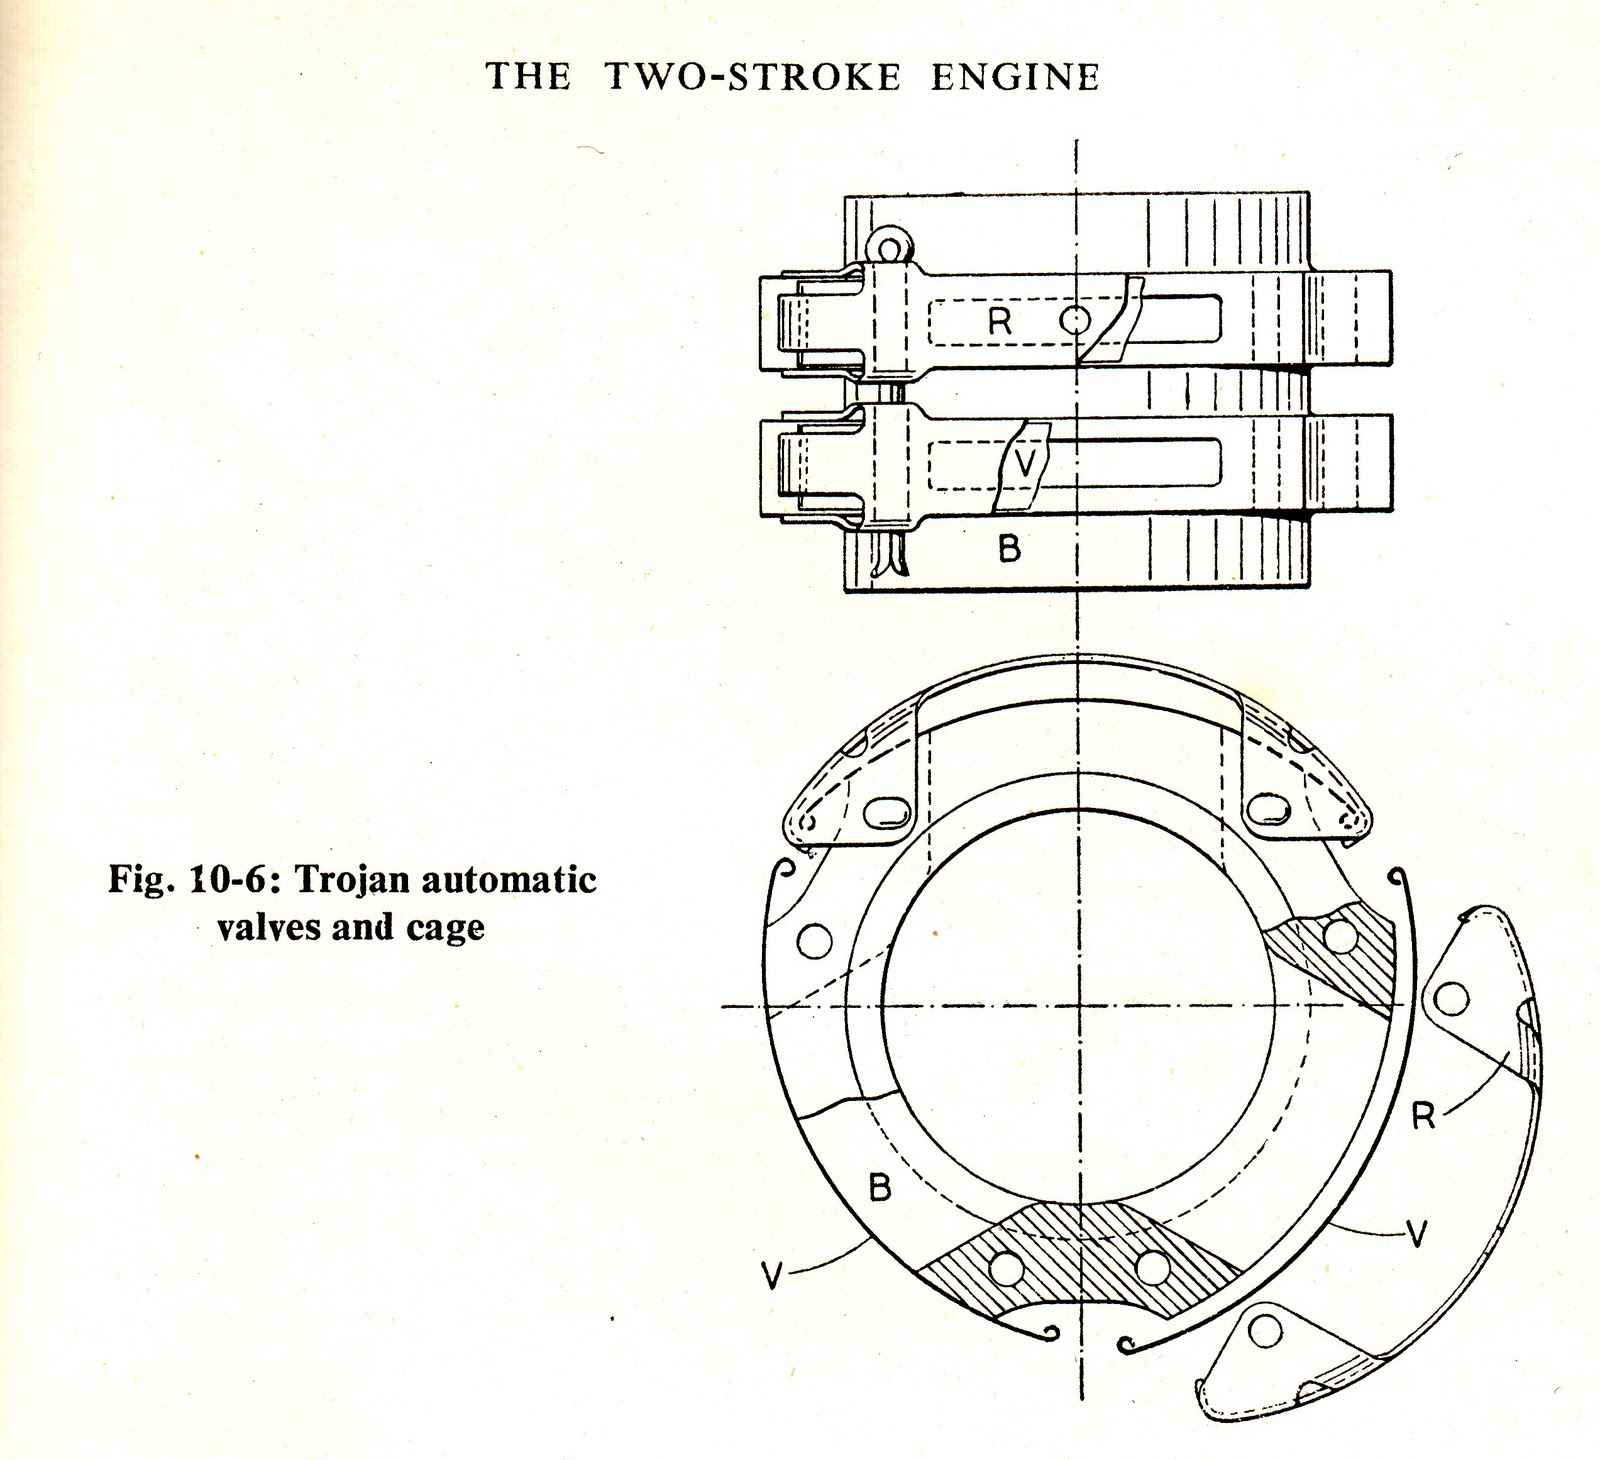 Trojan automatic valves and cage